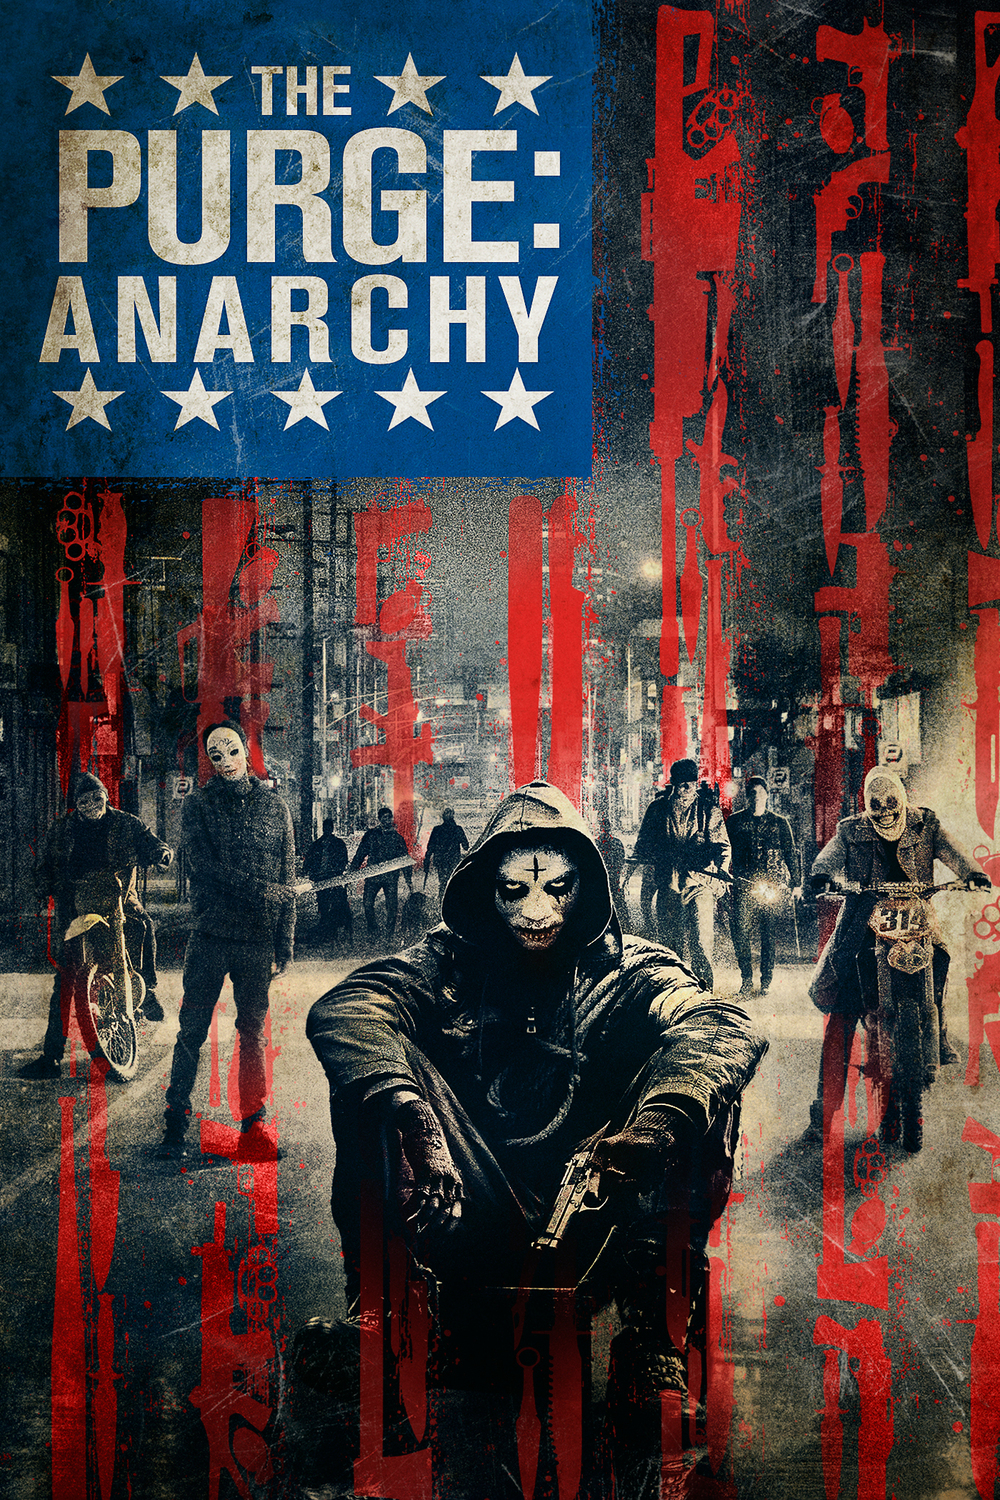 the purge anarchy Watch the purge: anarchy full movie online download , the purge: anarchy subtitle in english free hd on 123movies.